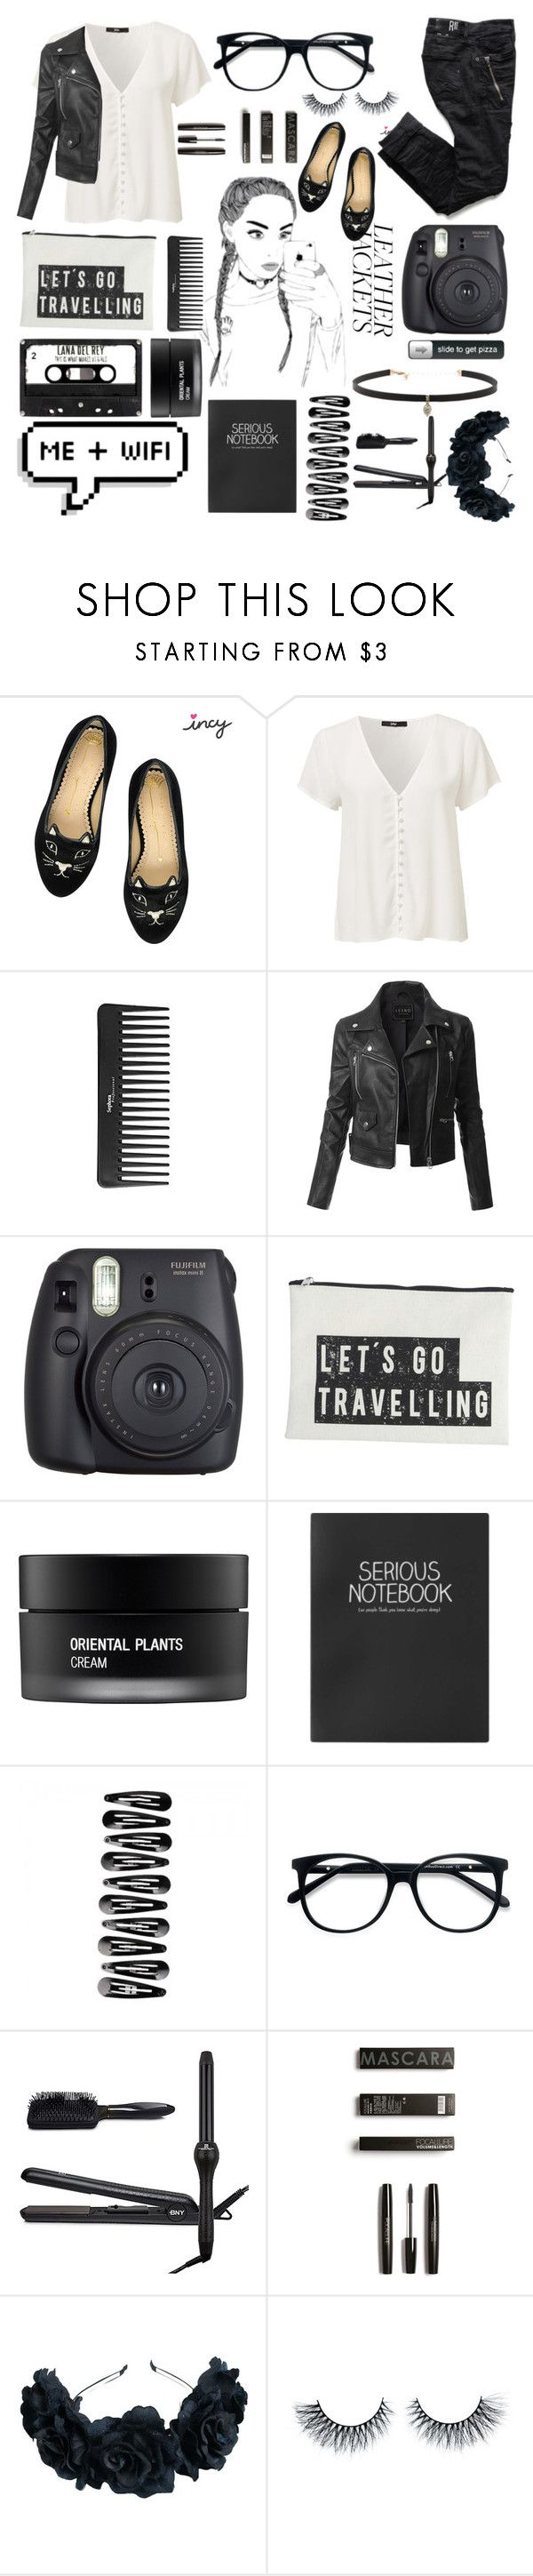 """""""The Basics"""" by janysha2369 ❤ liked on Polyvore featuring Sephora Collection, LE3NO, Fuji, House Doctor, Koh Gen Do, Topshop, EyeBuyDirect.com, Brilliance New York and Carbon & Hyde"""